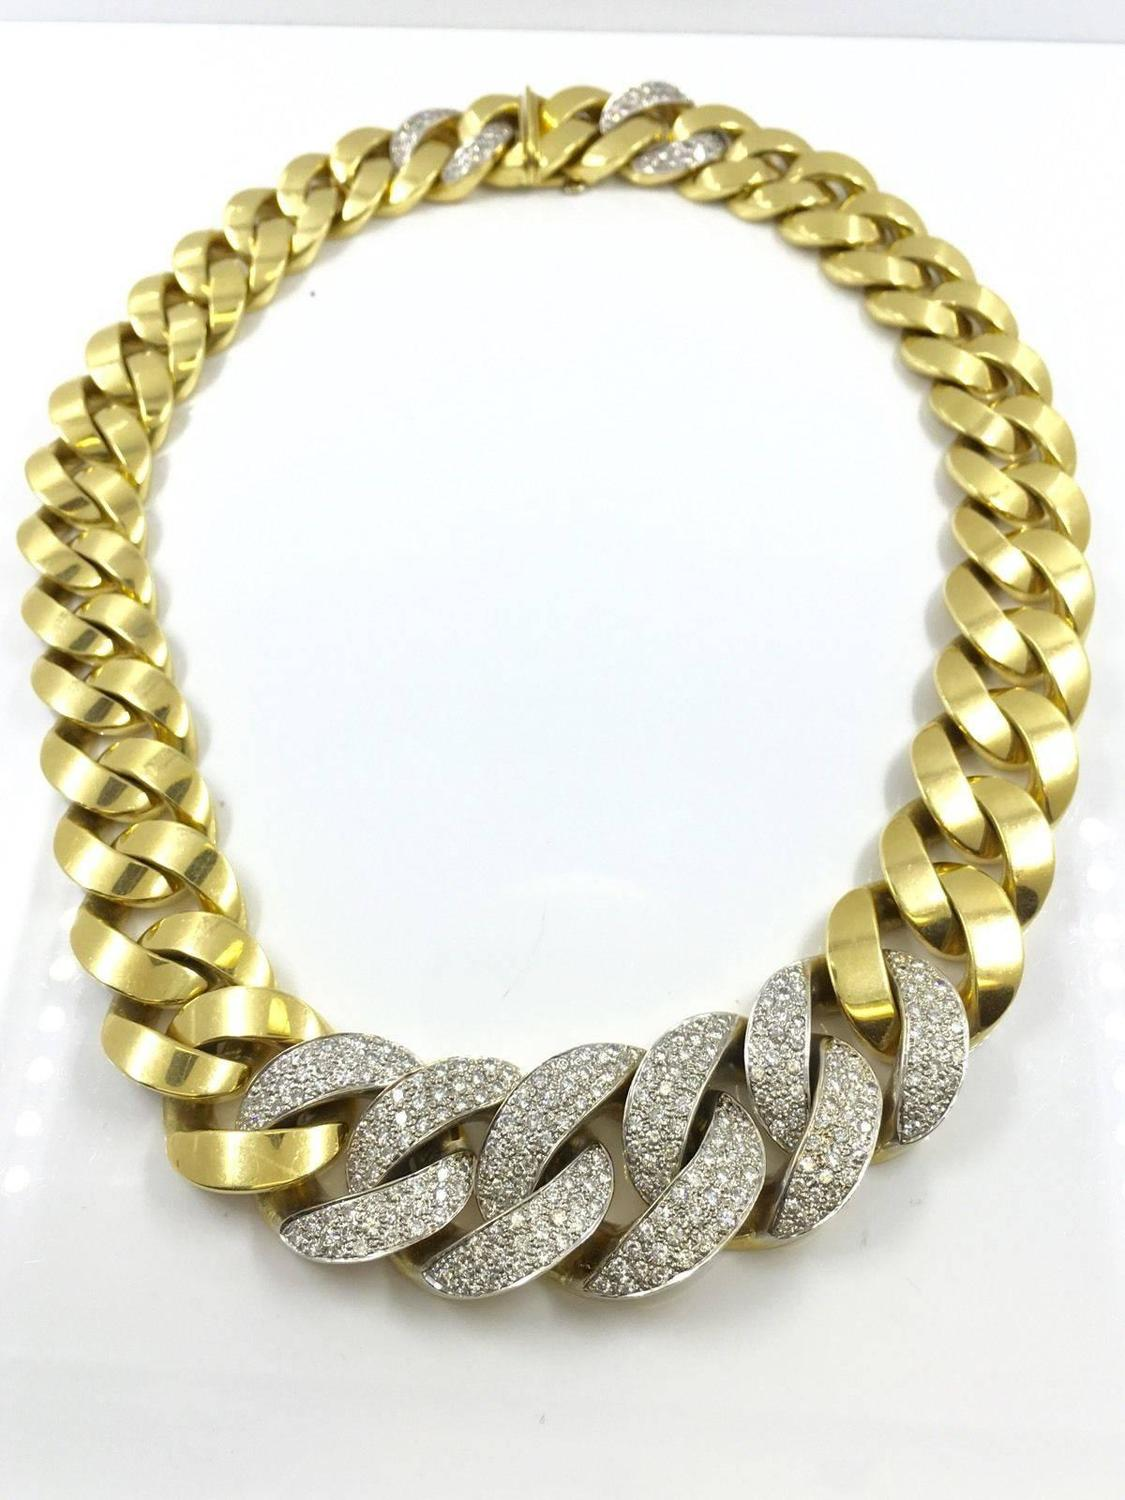 Vintage Italian 18k Gold Cuban Links With Diamond Chain At